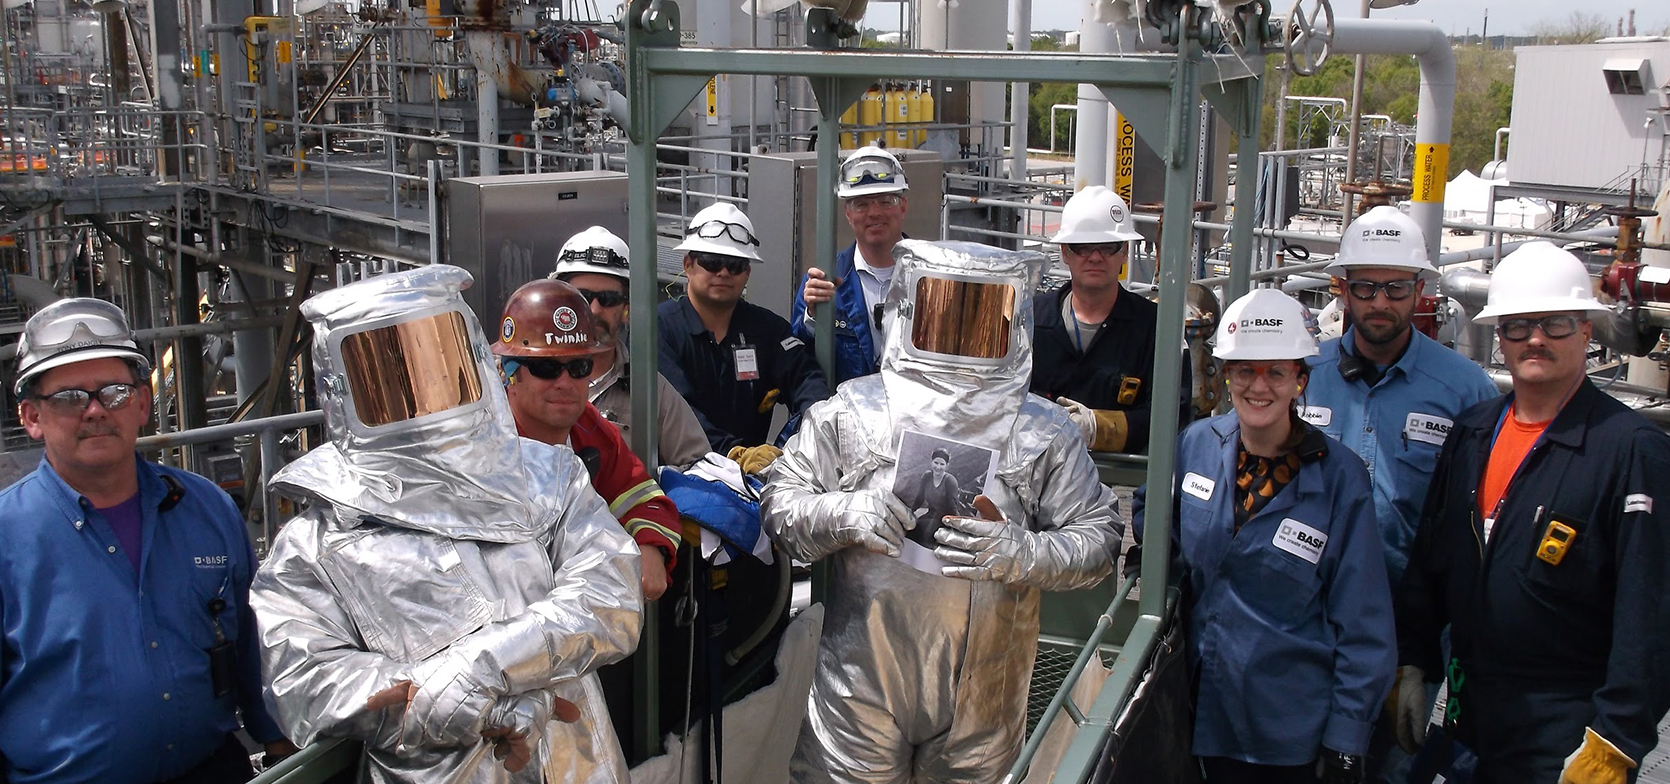 Phoenix Crew Posing for Photo at Chemical Plant